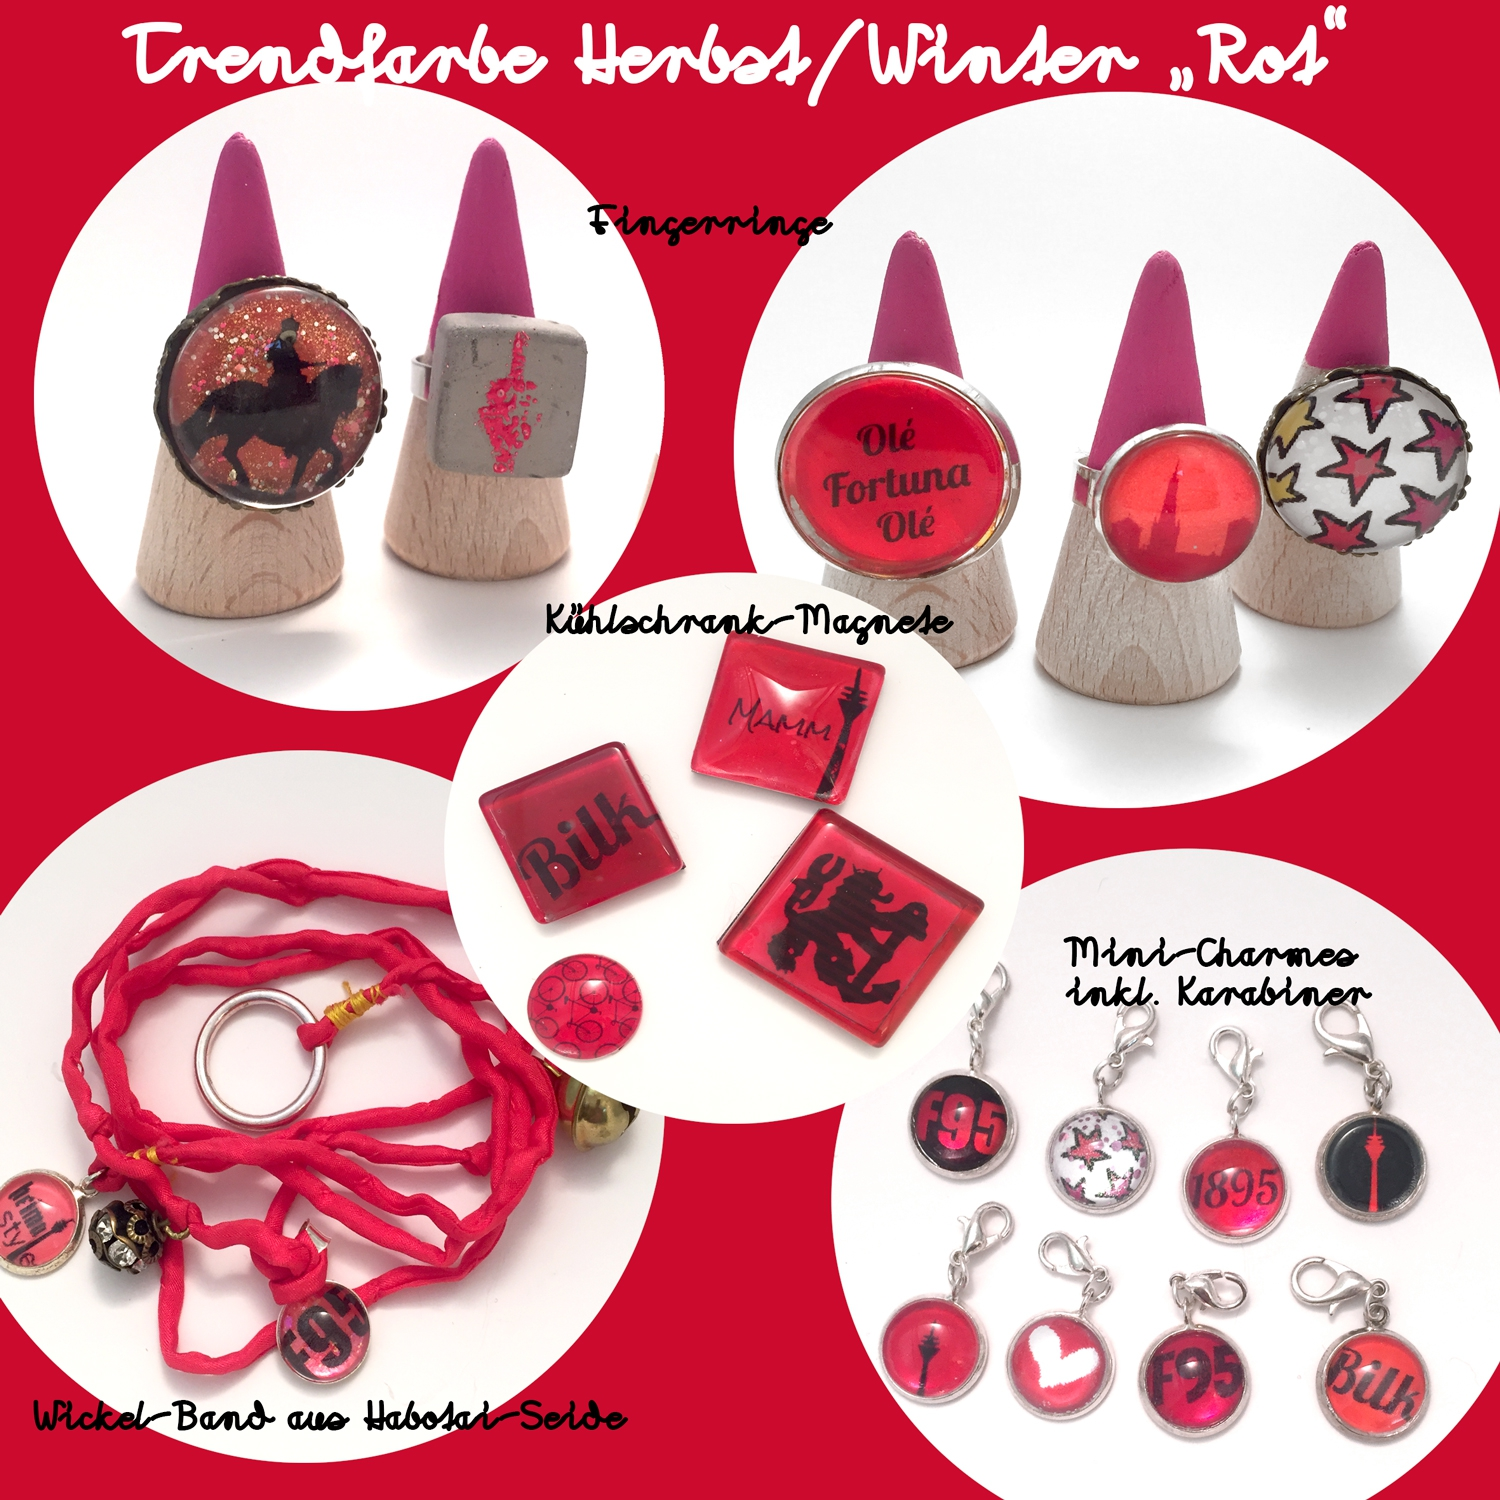 Trendfarbe_rot